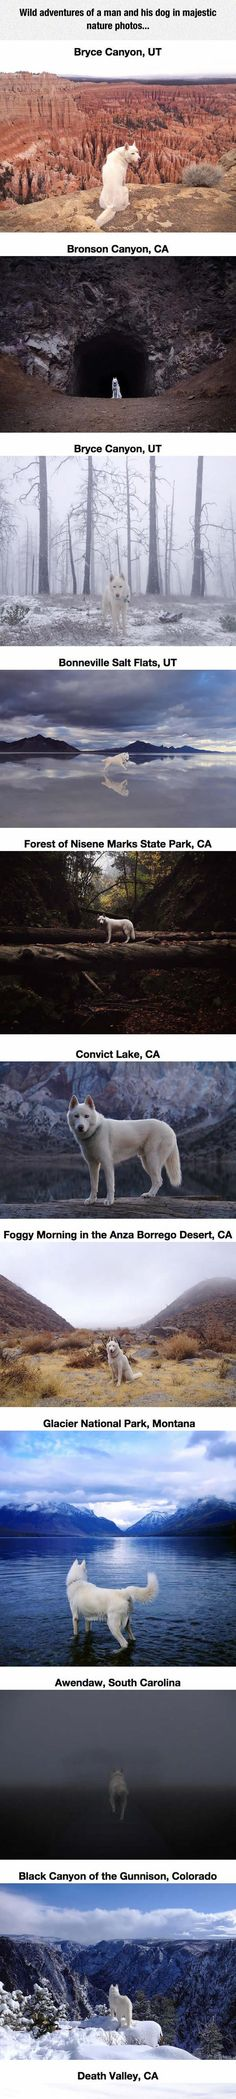 Dogs Are The Best Travel Buddies...click for rest, they are really cool